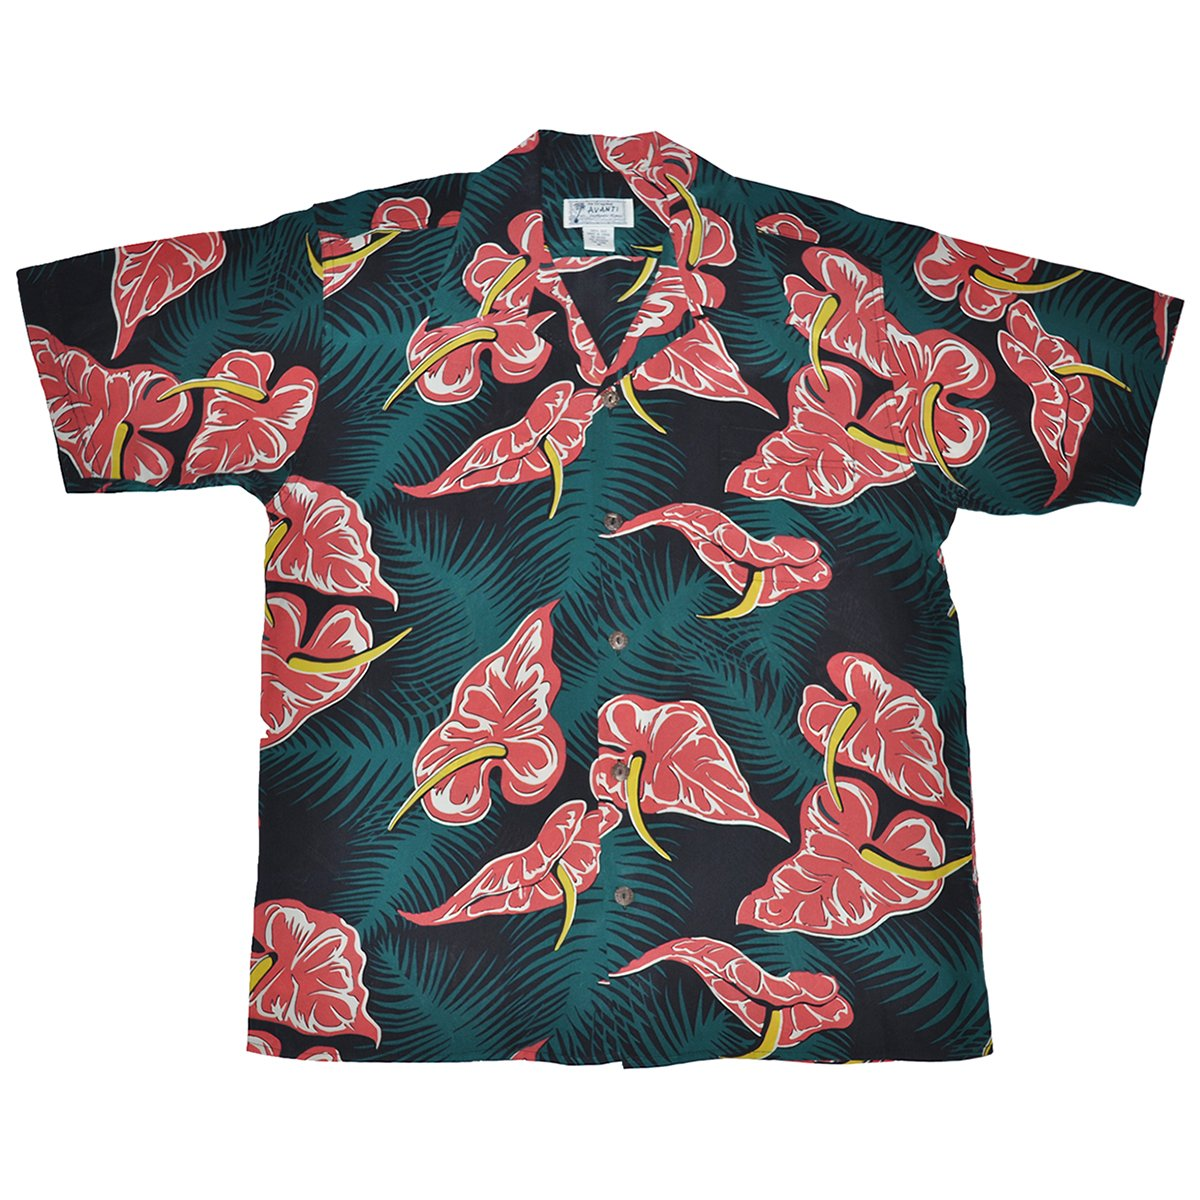 Avanti Hawaiian Shirt - Heart Of Hawaii - Black